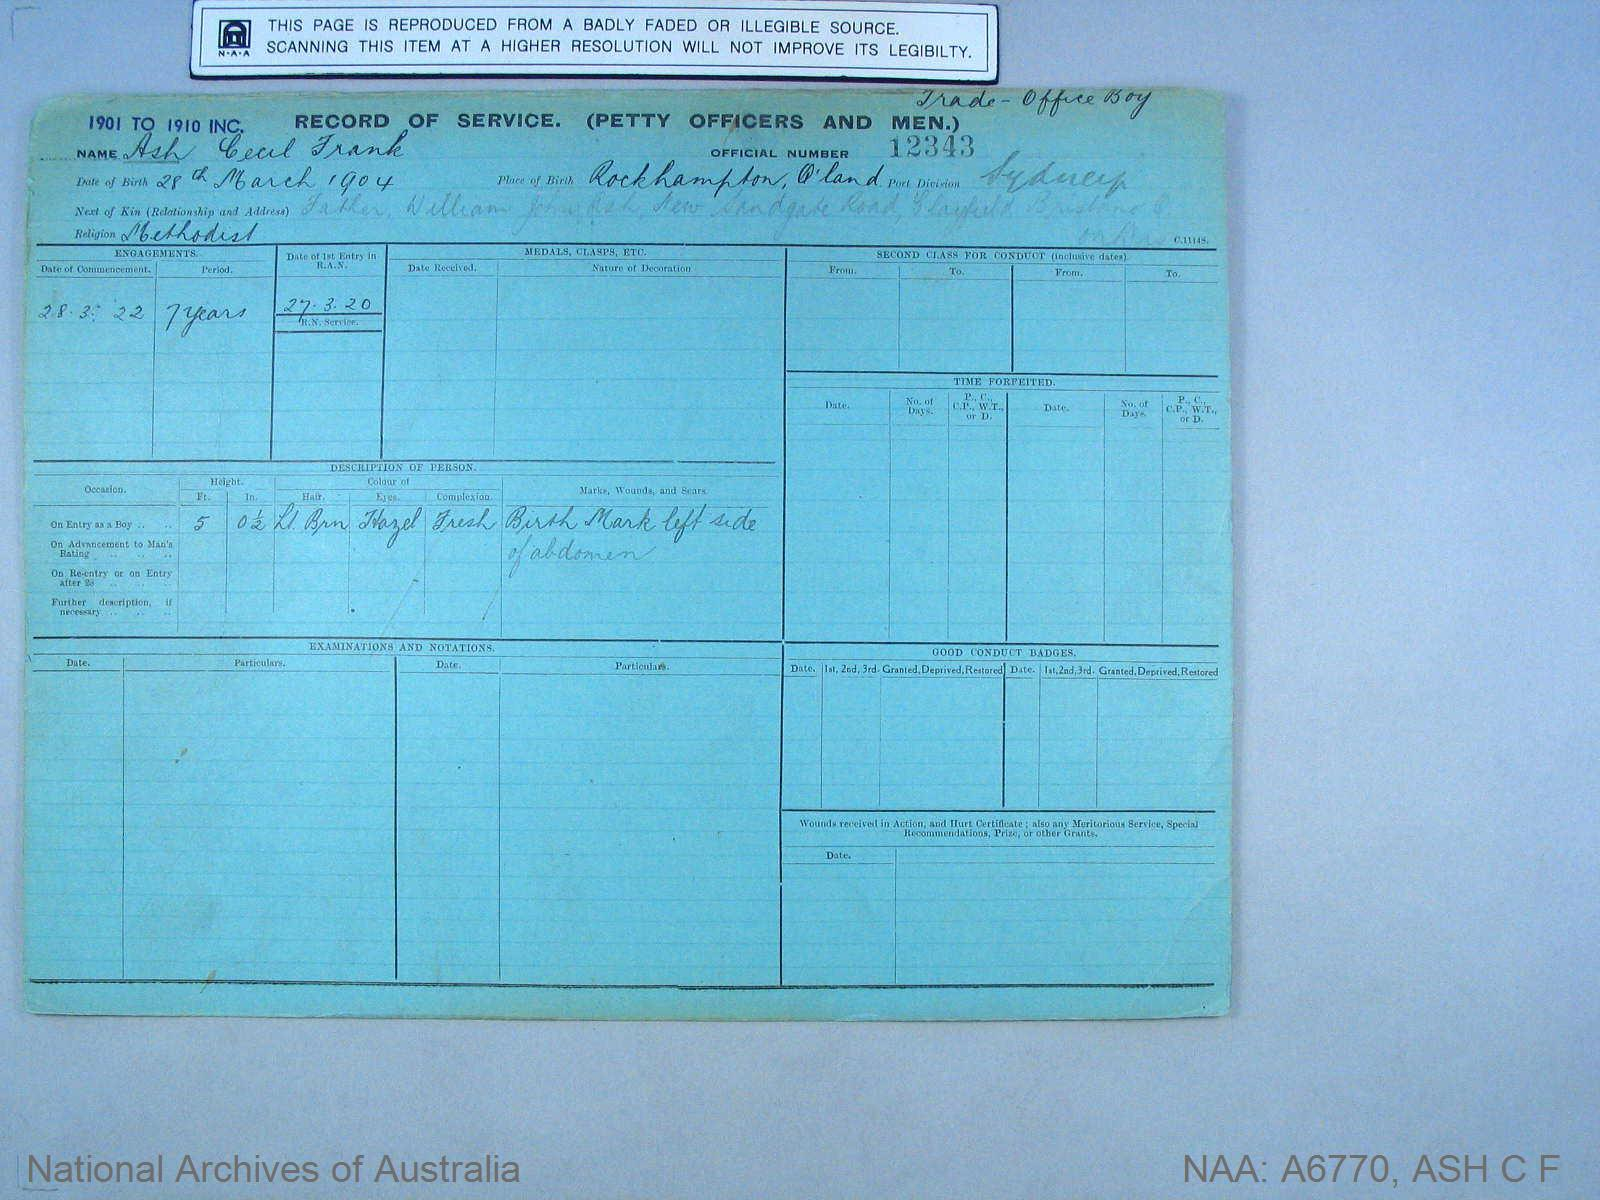 ASH CECIL FRANK : Service Number - 12343 : Date of birth - 28 Mar 1904 : Place of birth - ROCKHAMPTON QLD : Place of enlistment - SYDNEY : Next of Kin - ASH WILLIAM